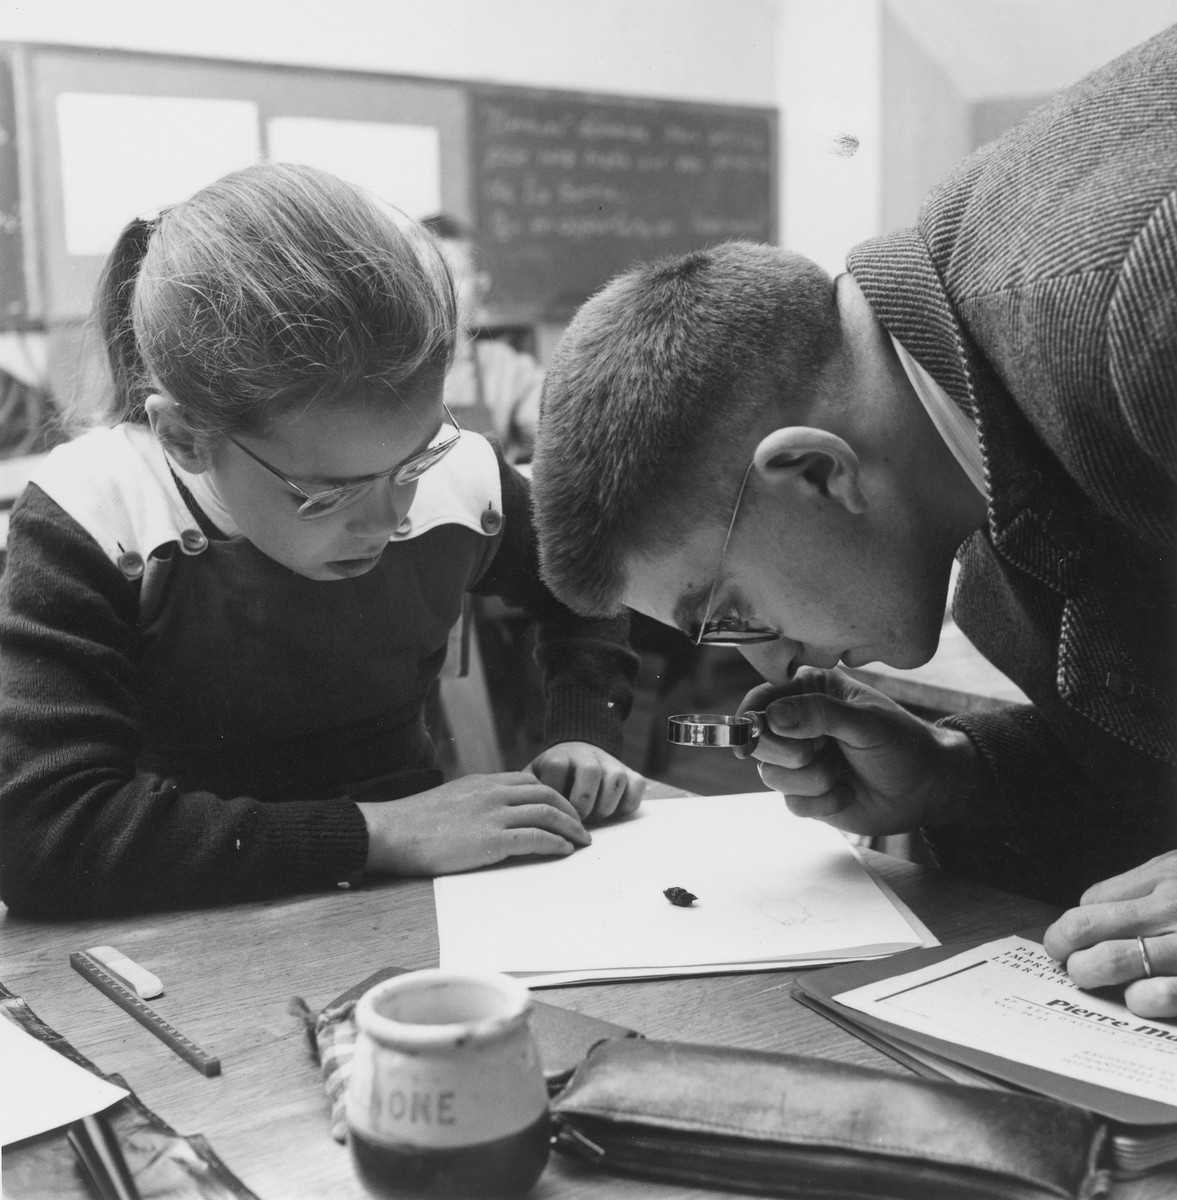 A teacher looks through a magnifying glass while a young girl seated at the table looks on in a classroom of an unidentified OSE post-war children's home.